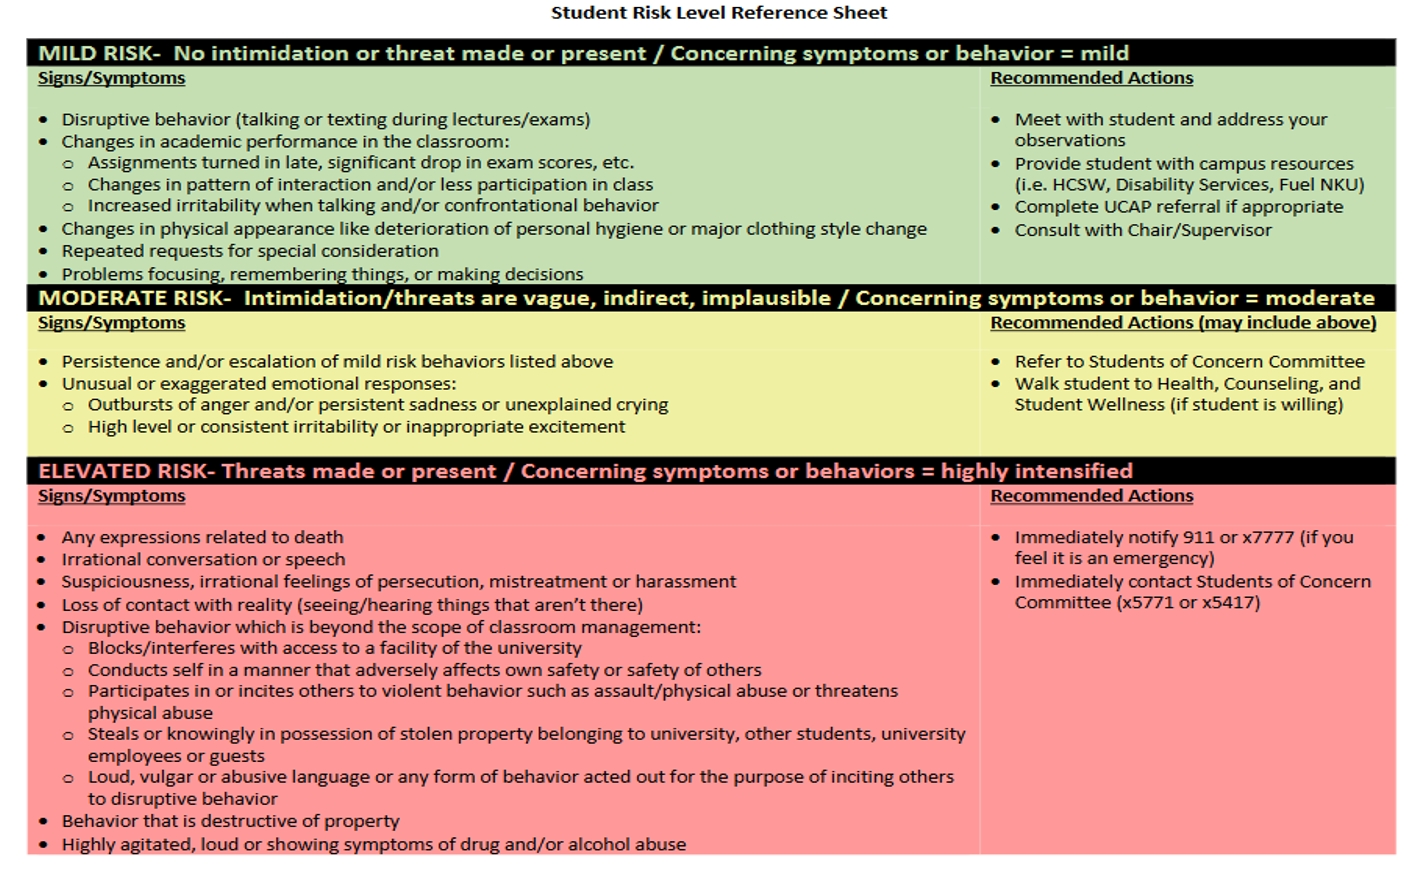 Student Risk Level Reference Sheet